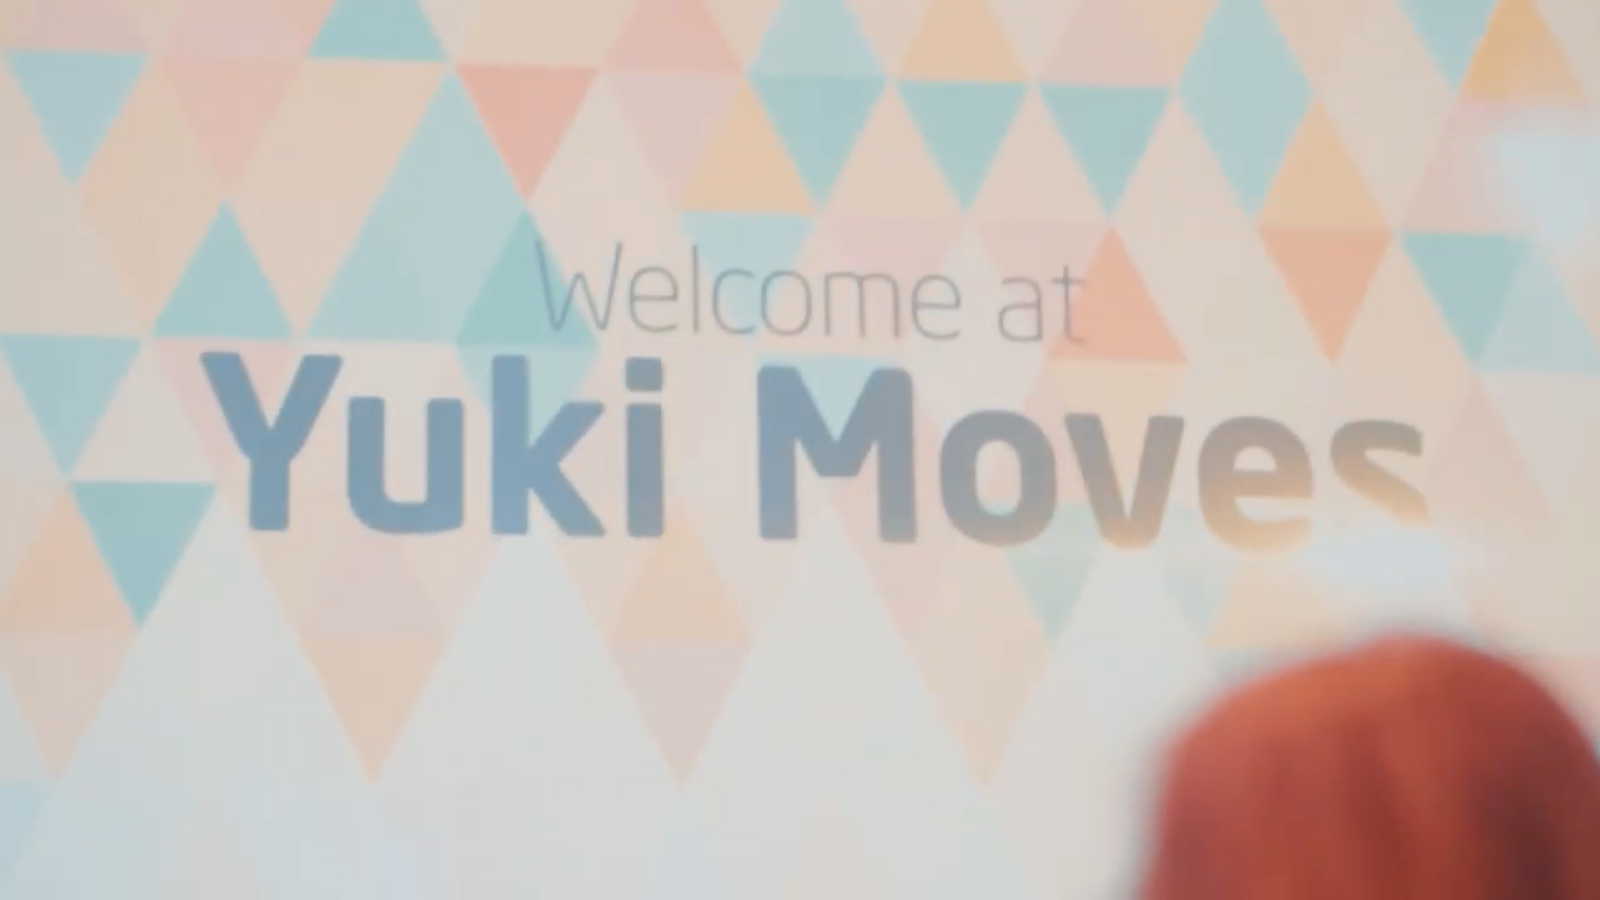 Yuki moves 2018